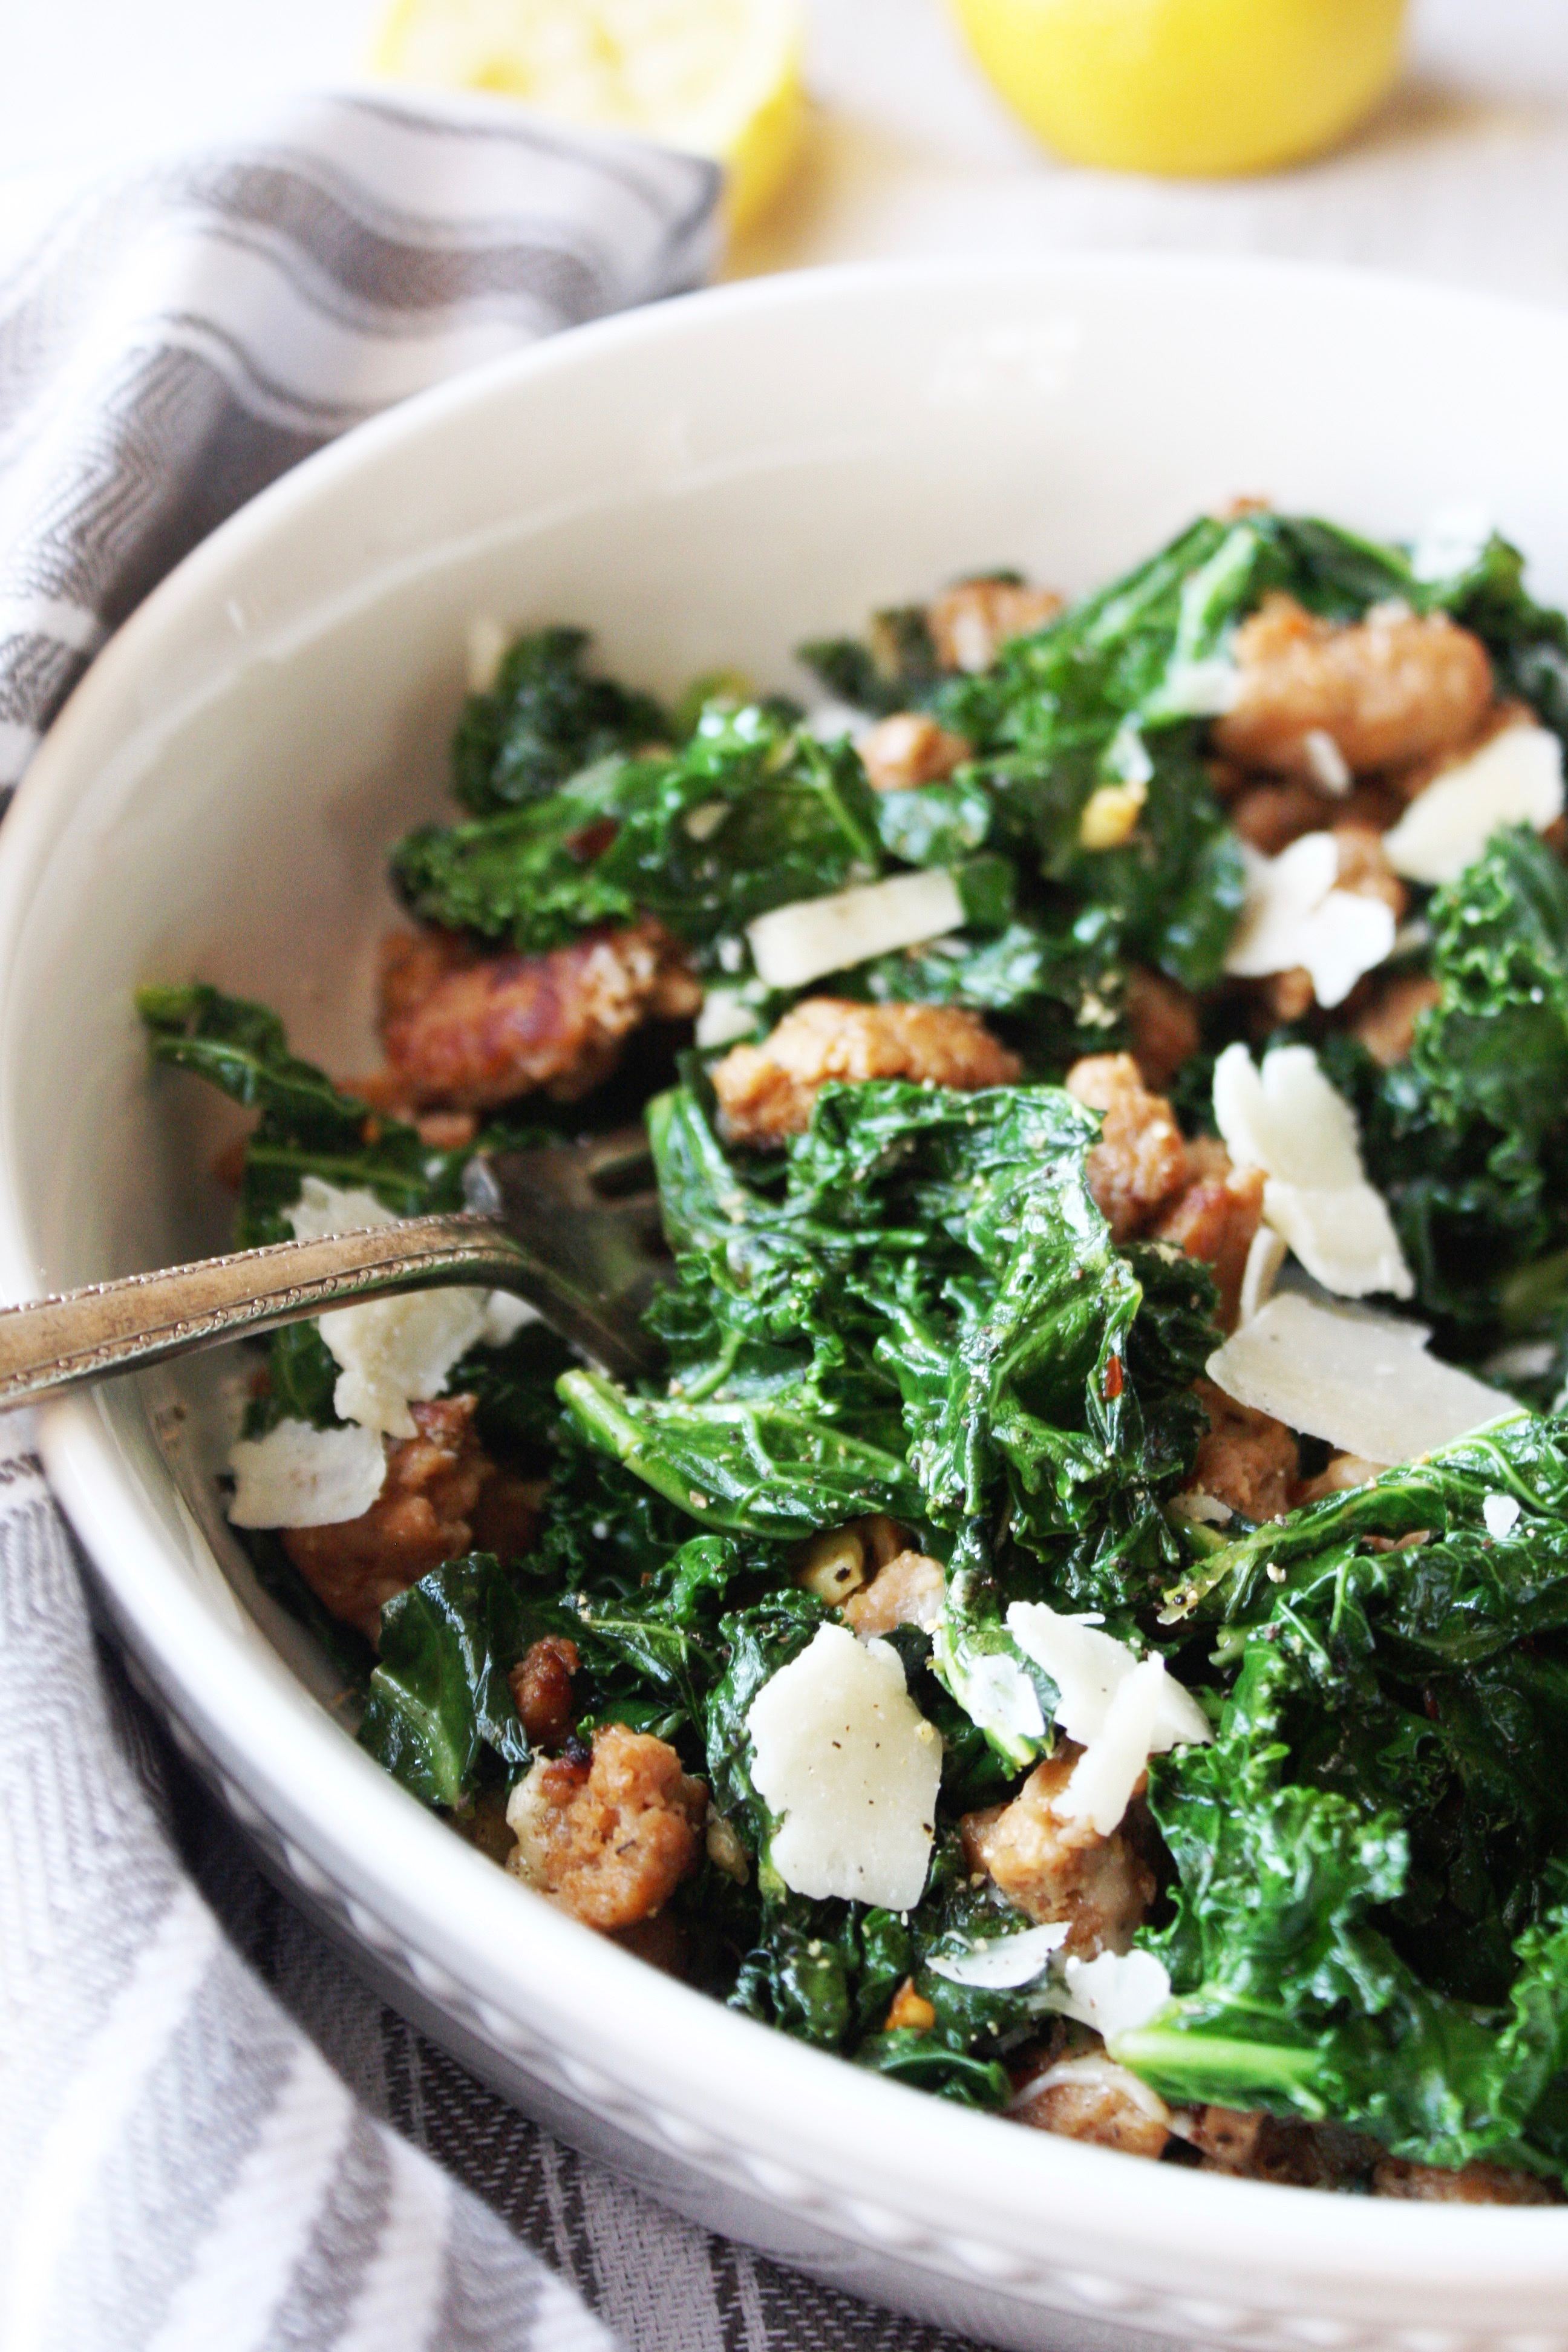 Kale and turkey sausage saute with parmesan 21 day fix kale and turkey sausage saute with parmesan 21 day fix this speedy dinner forumfinder Gallery